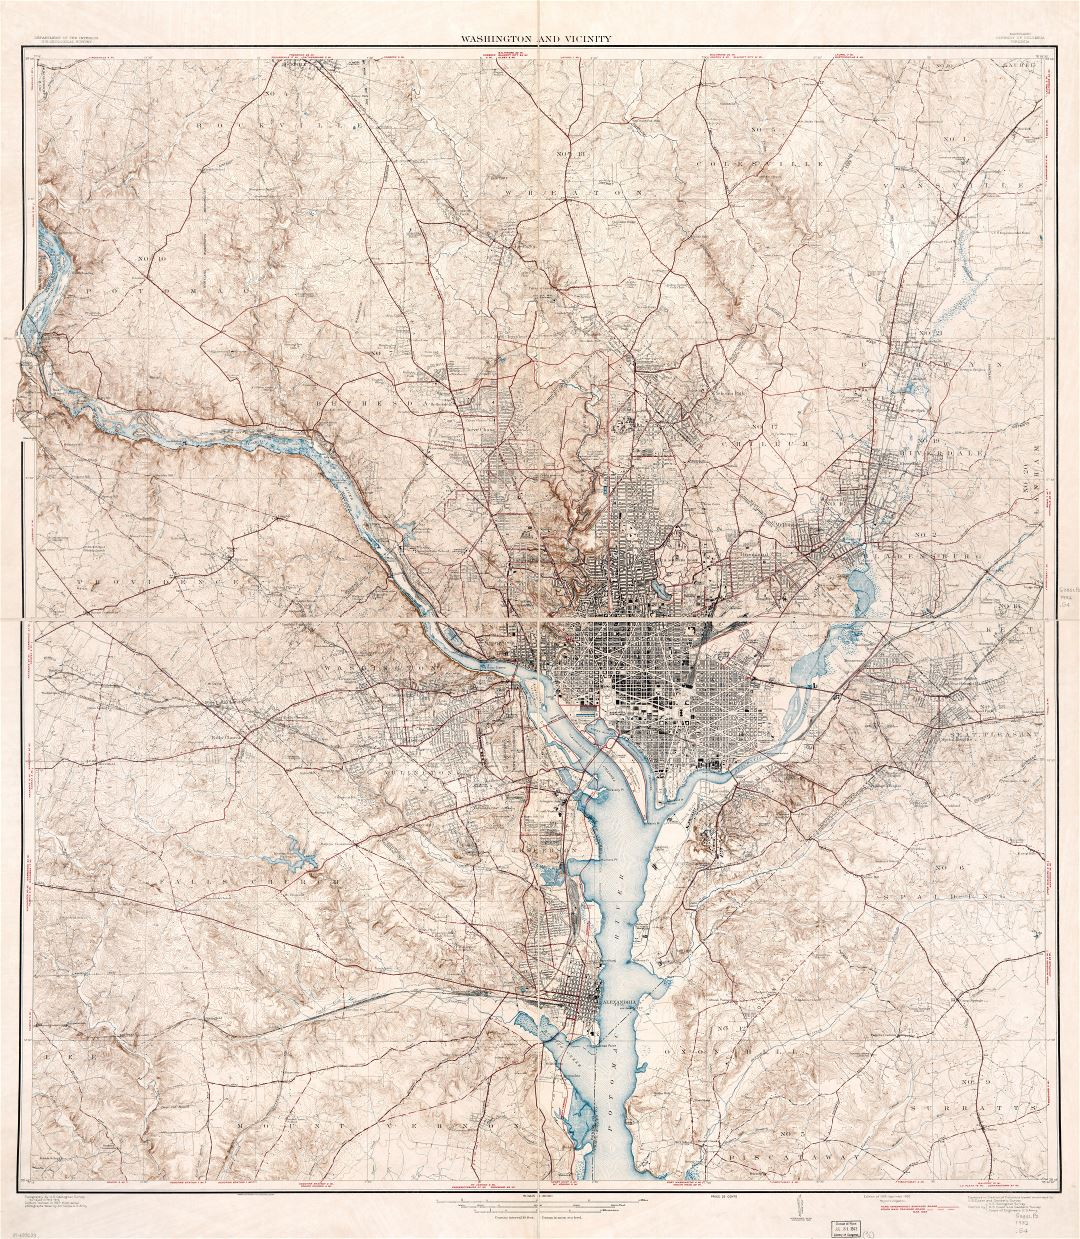 Large scale detailed old map of Washington and vicinity, Maryland District of Columbia, Virginia - 1932